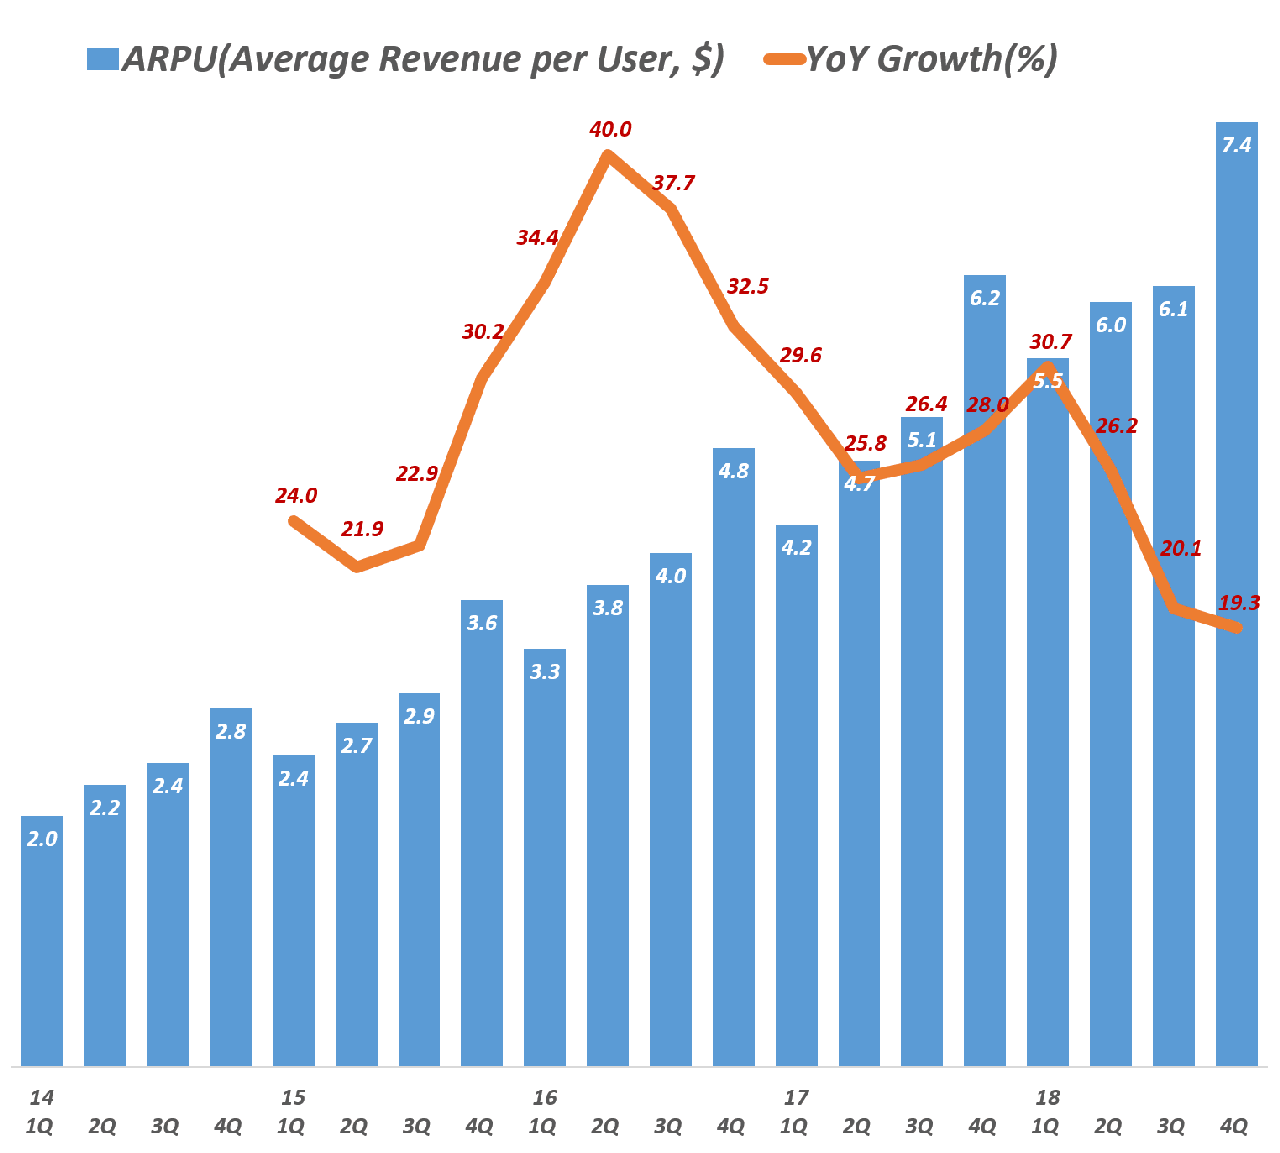 페이스북 분기별 사용자 1인당 매출 추이(2012년 1분기 ~ 2018년 4분기), Facebook ARPU(Average Revenue per User) trend, Data - invest.fb.com, Graph by Happist